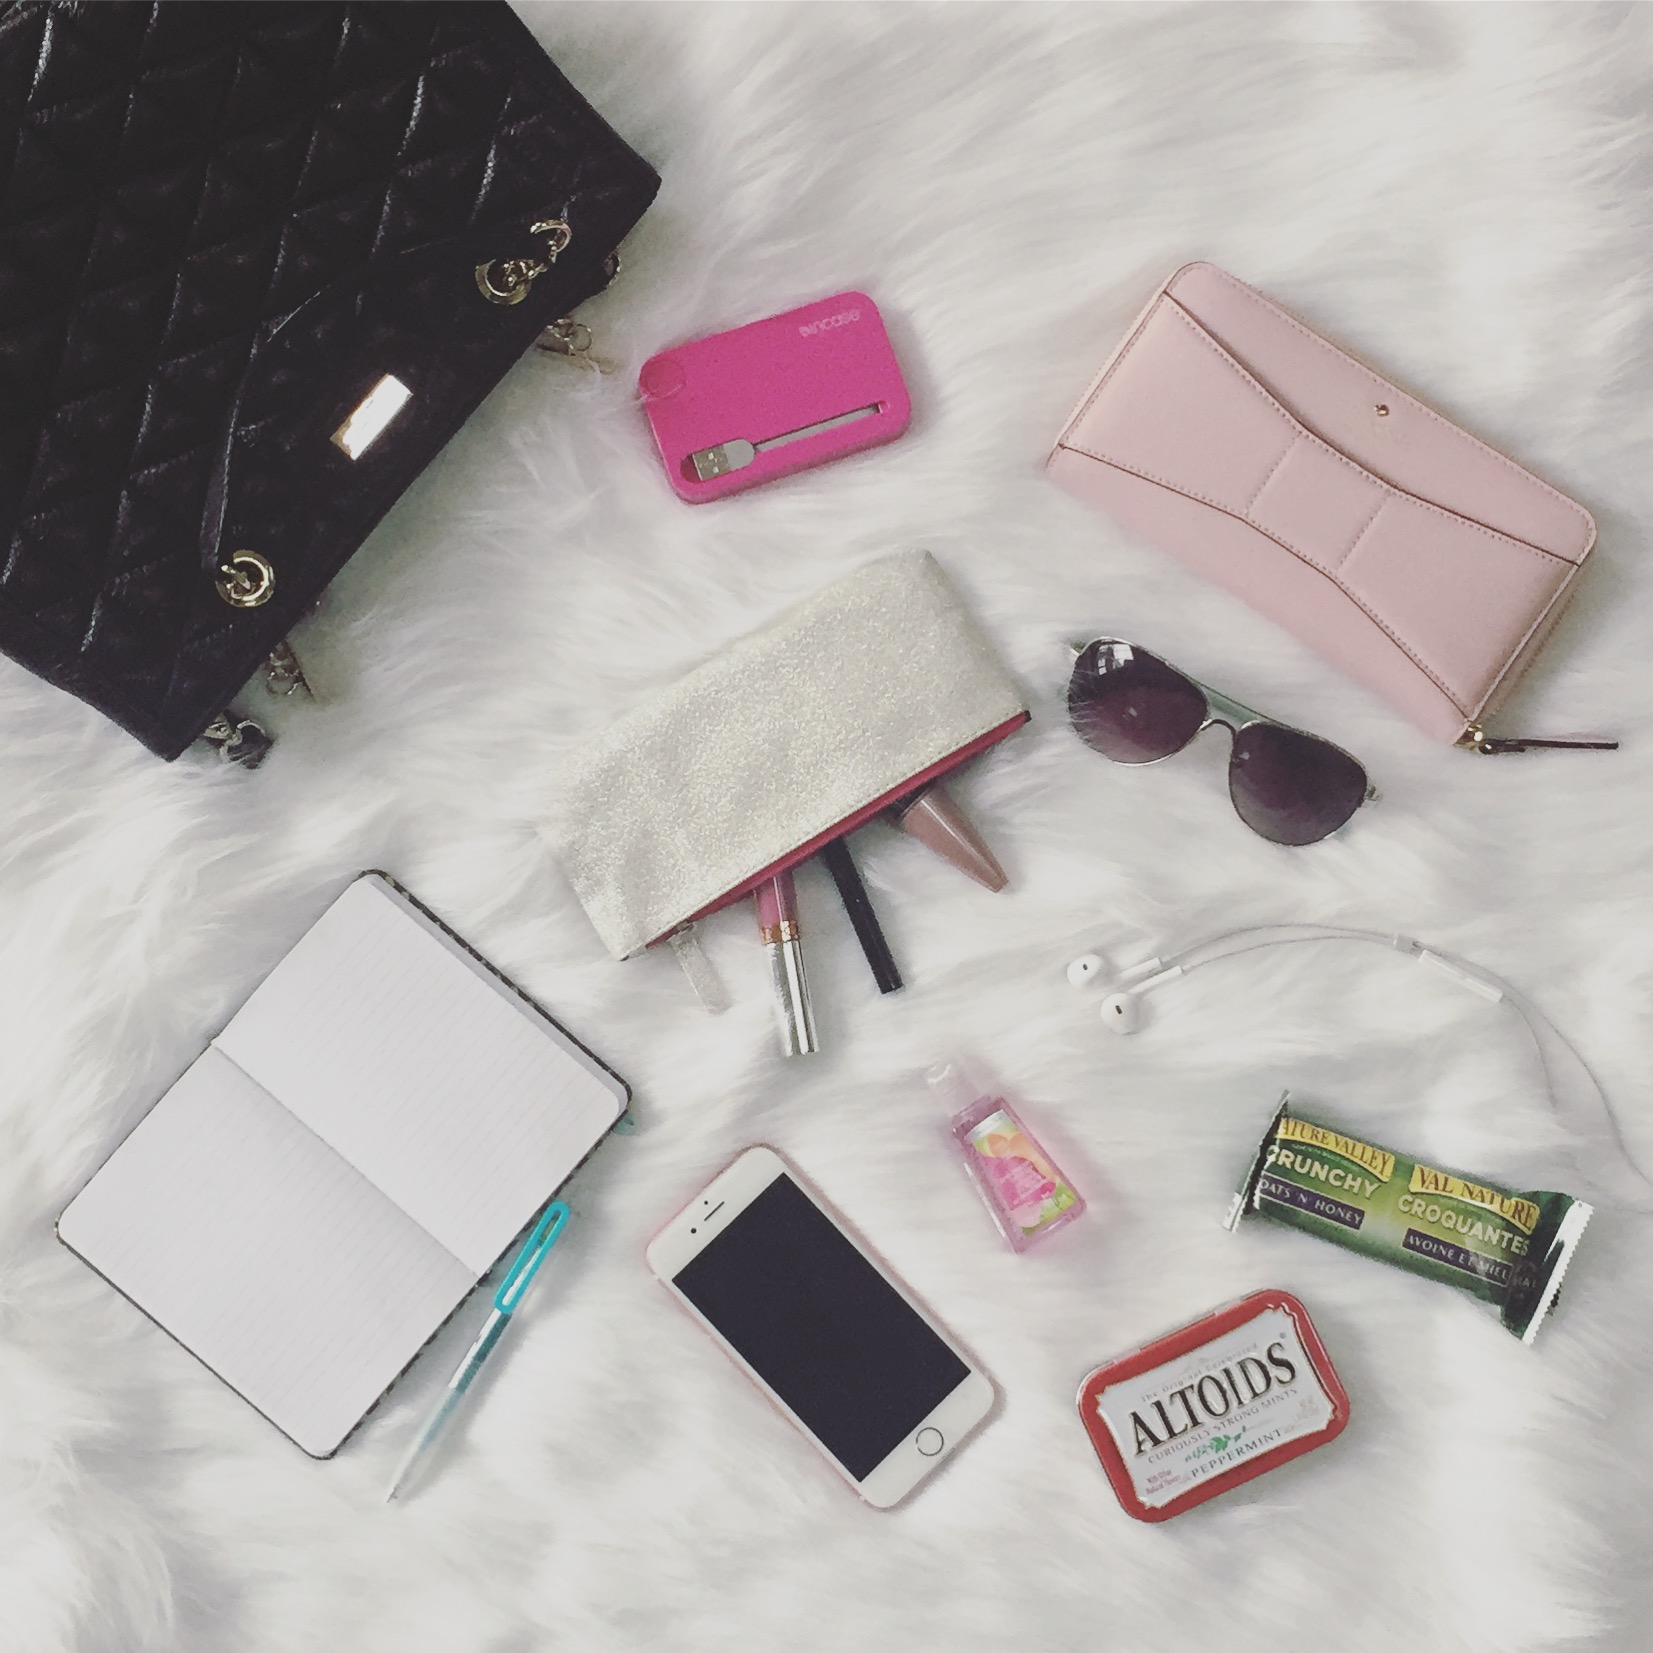 Handbags 101: 10 Things Every Woman Should Keep In Her Purse!